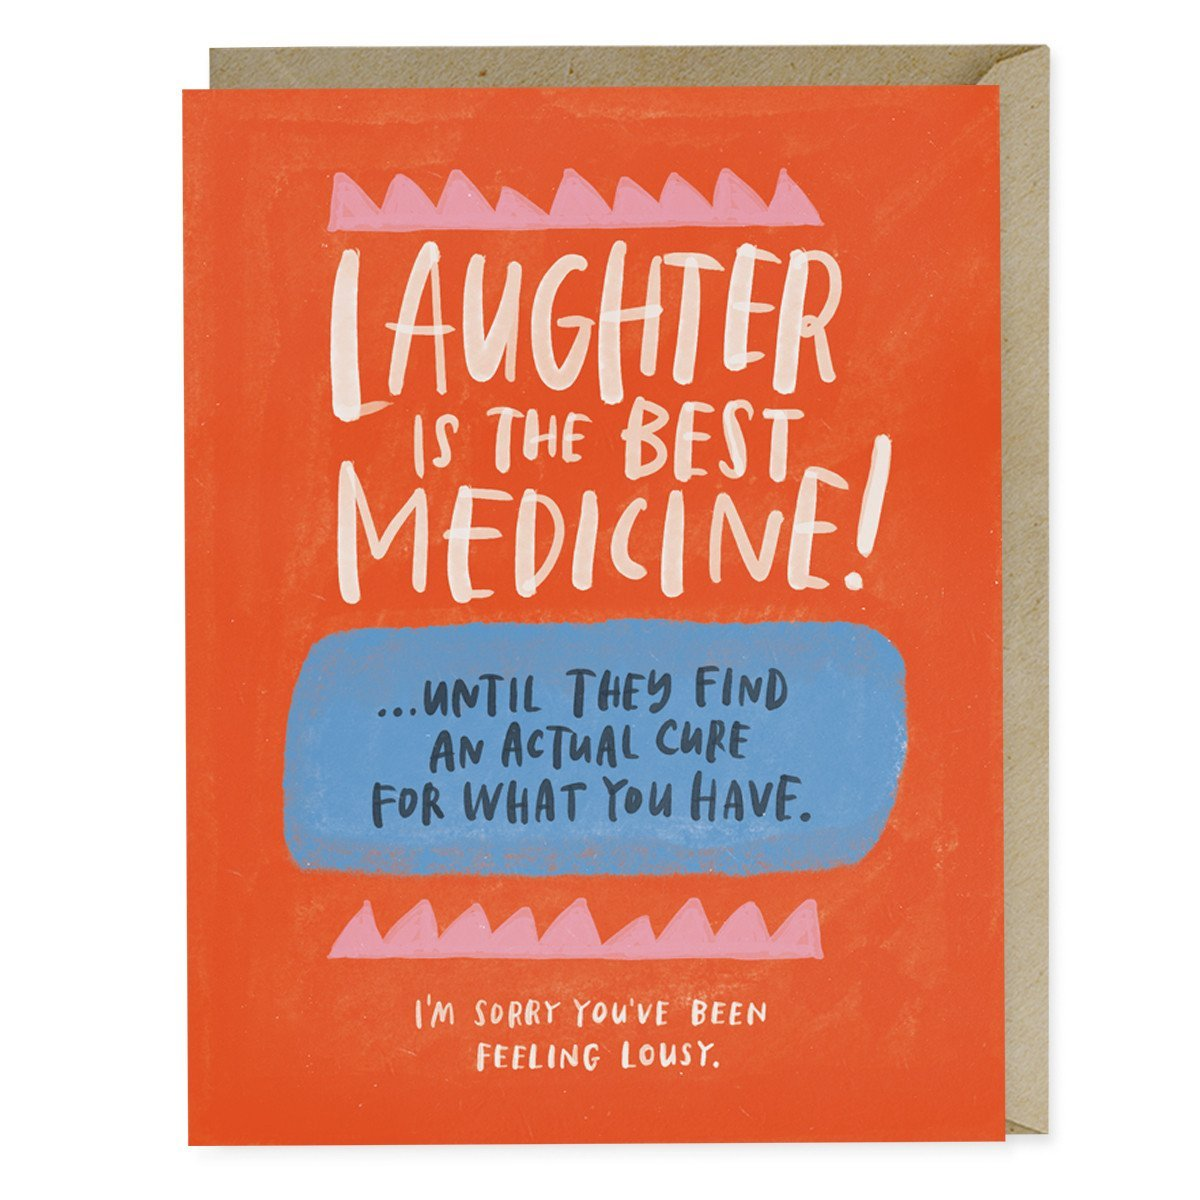 laughter is the best medicine essay for class 6